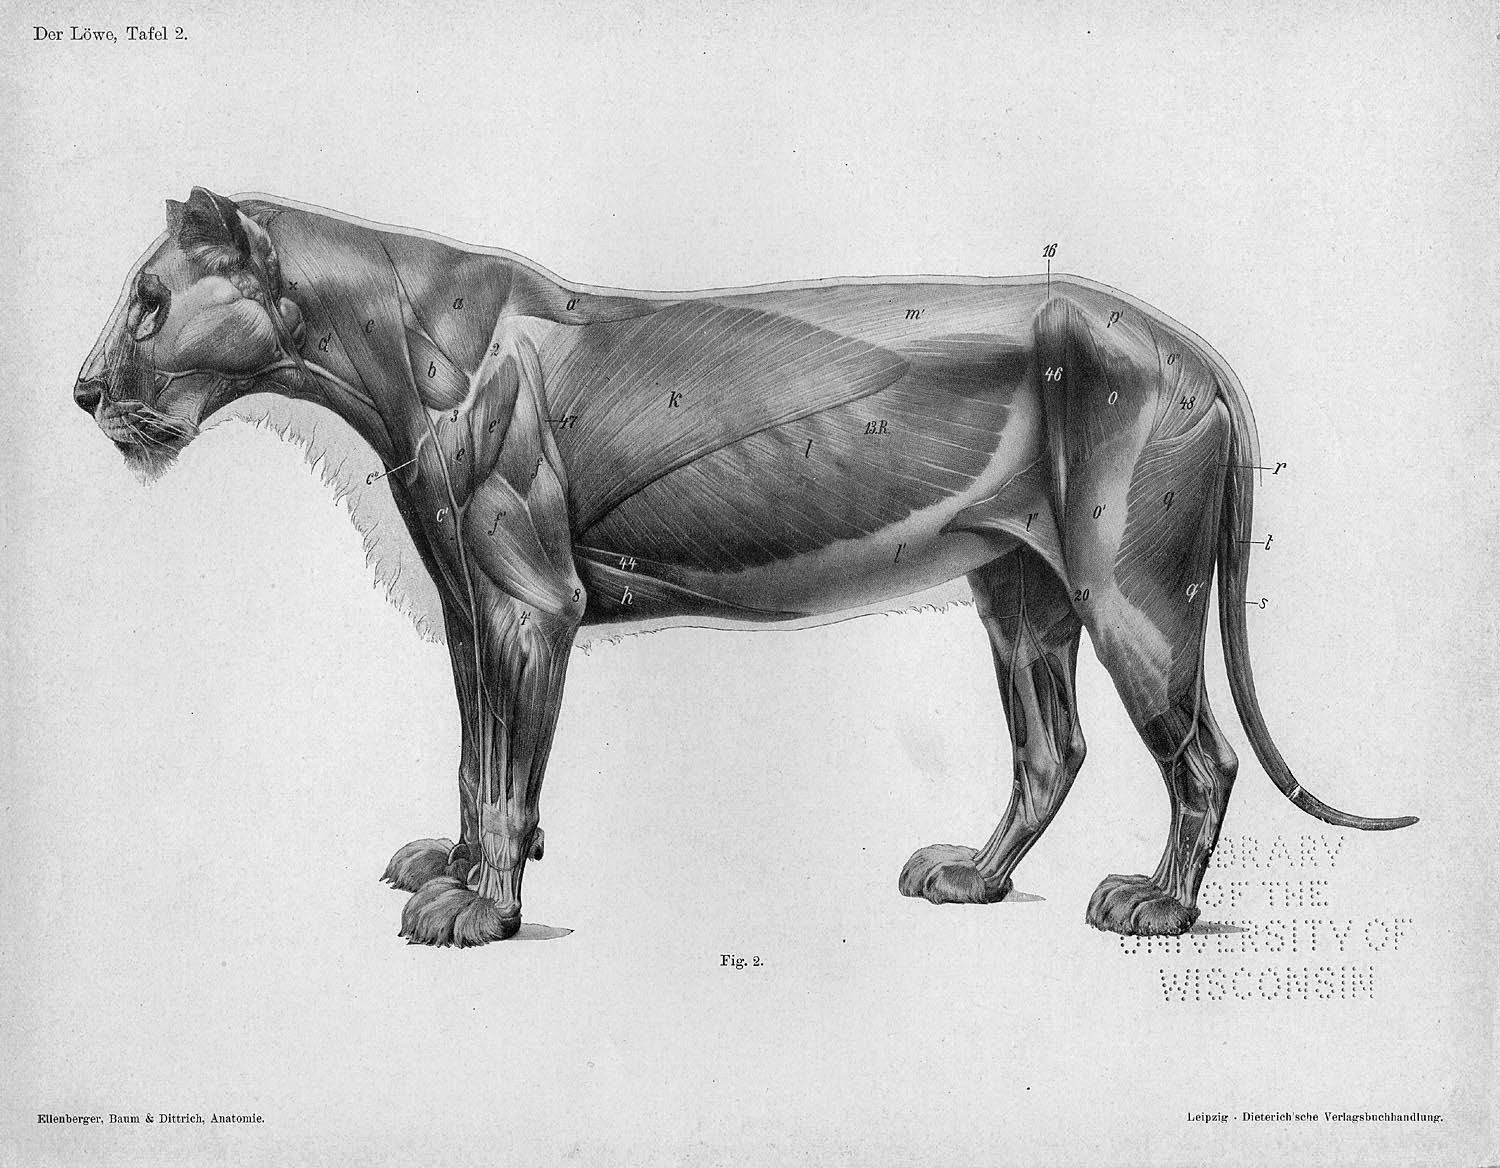 Pin by Sina Bischof on Tier scits | Pinterest | Animal anatomy ...